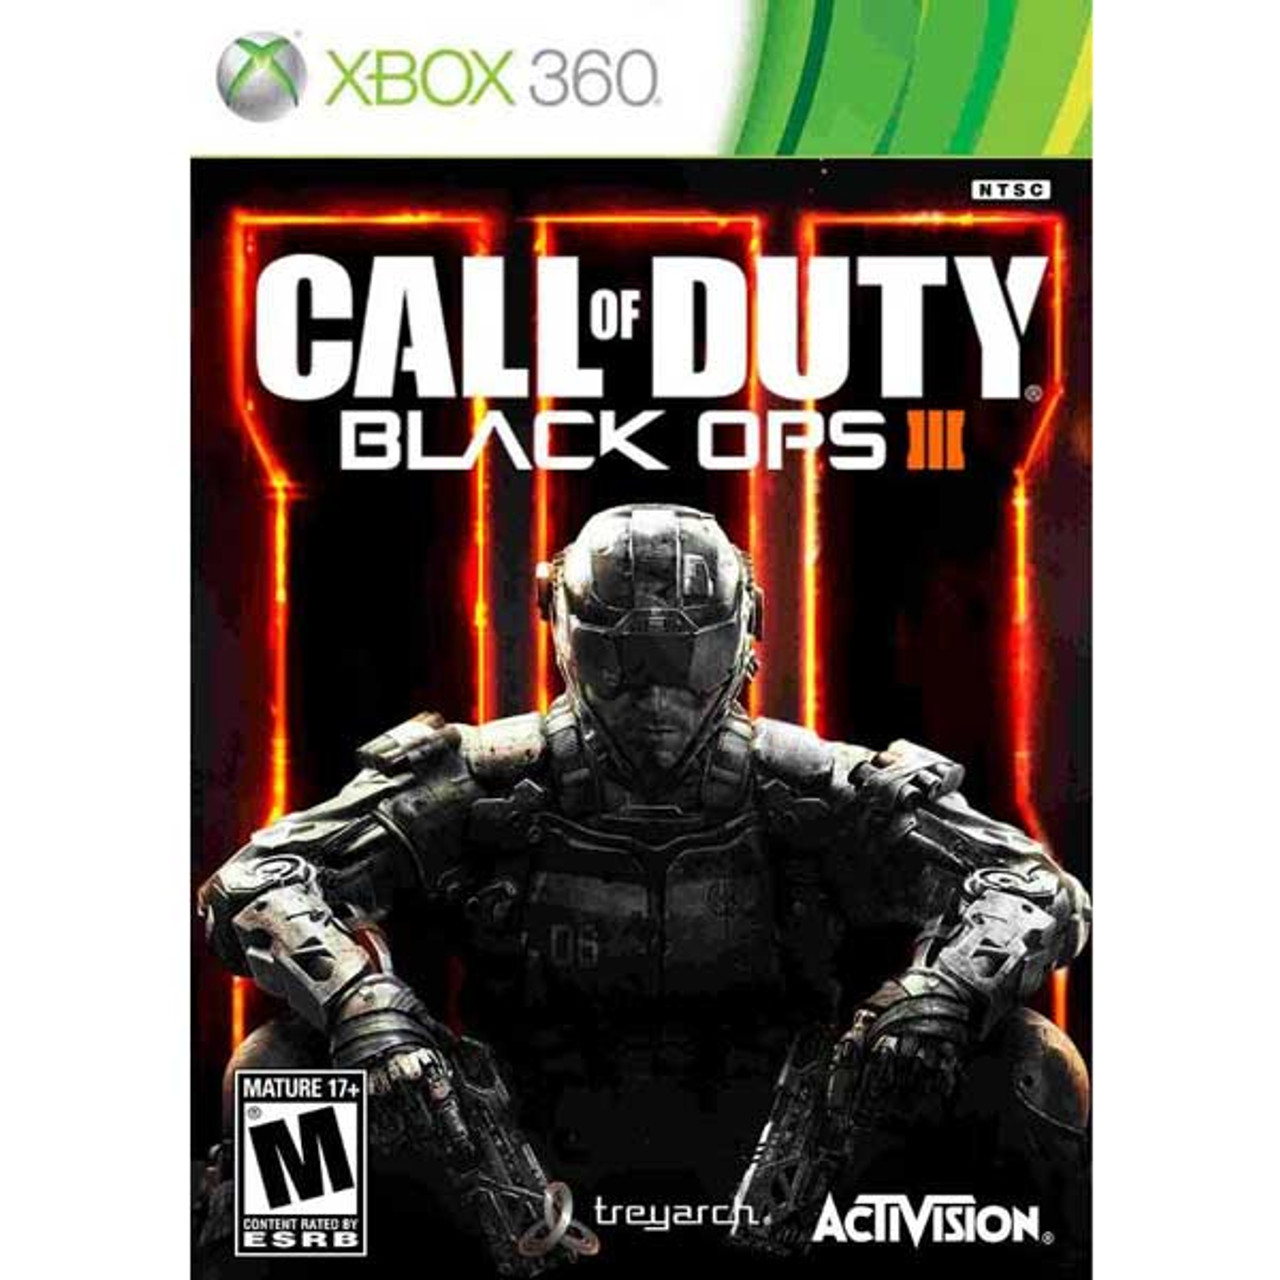 Call Of Duty Black Ops Iii Xbox 360 Game For Sale Dkoldies